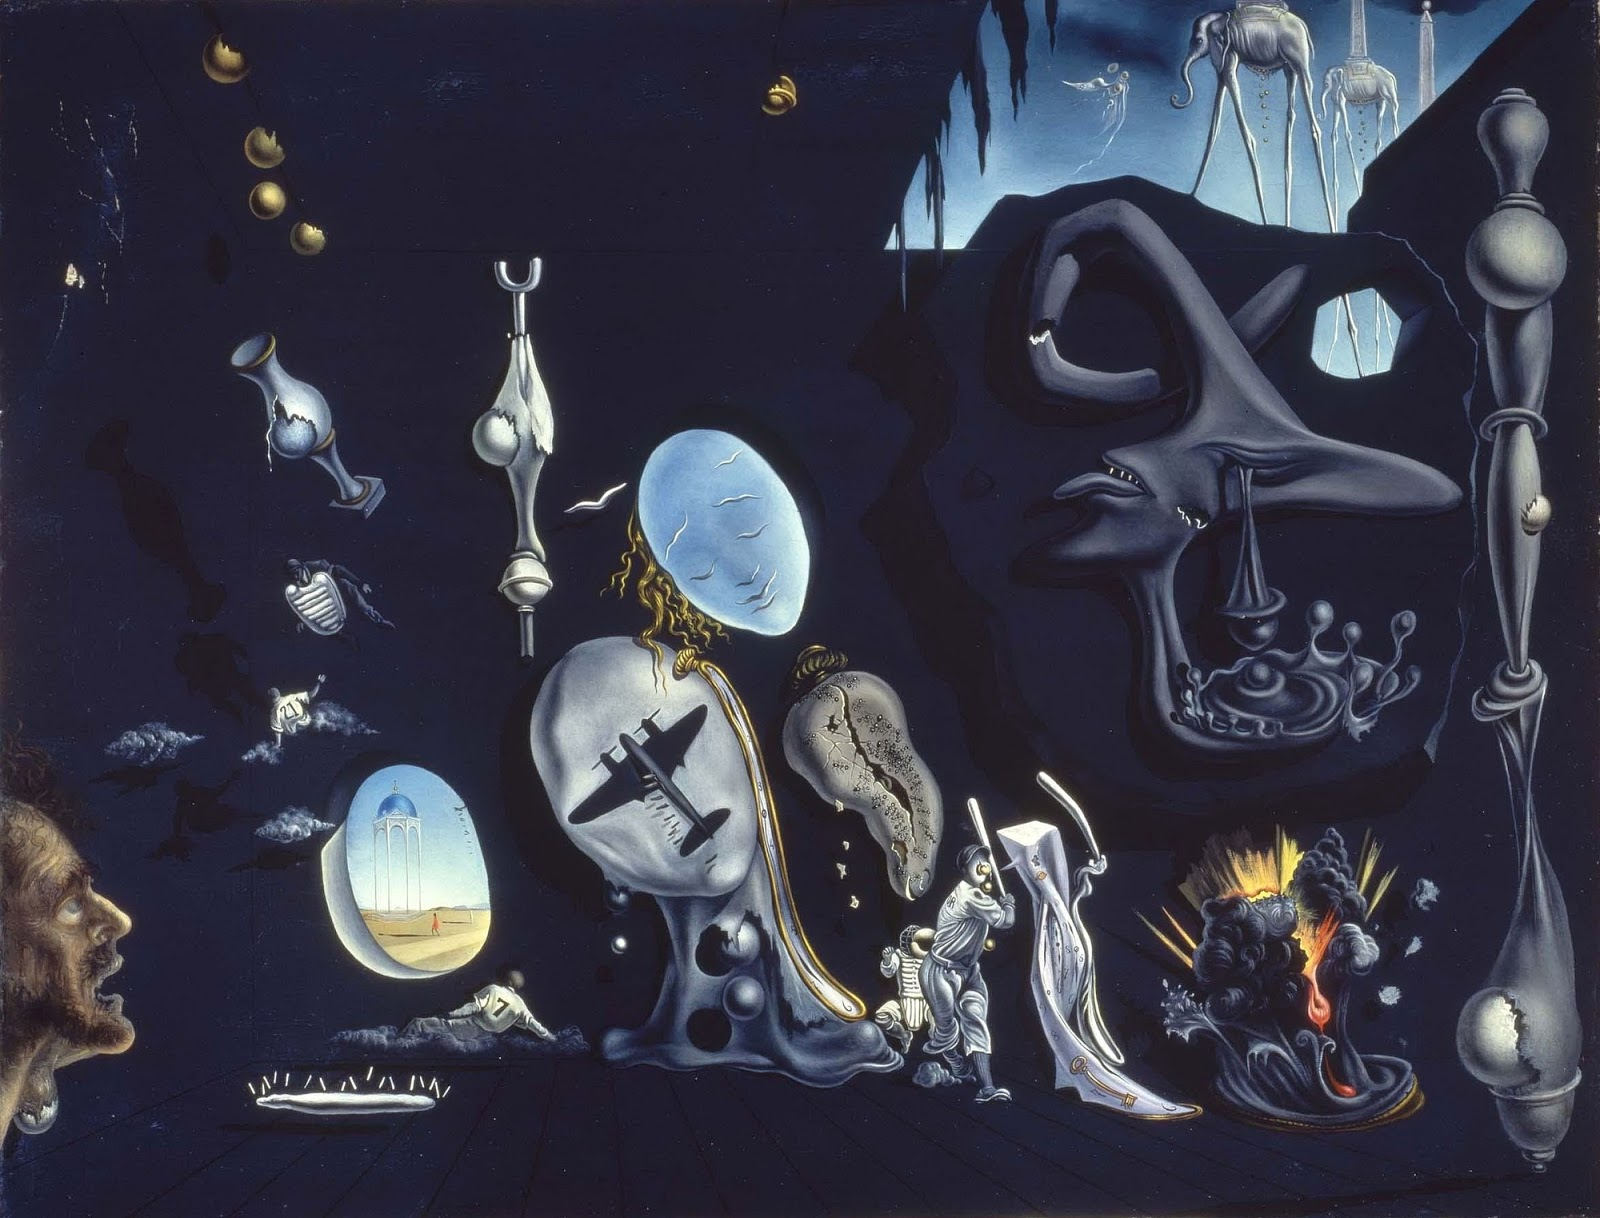 a biography and art of salvador dali a prominent spanish surrealist painter